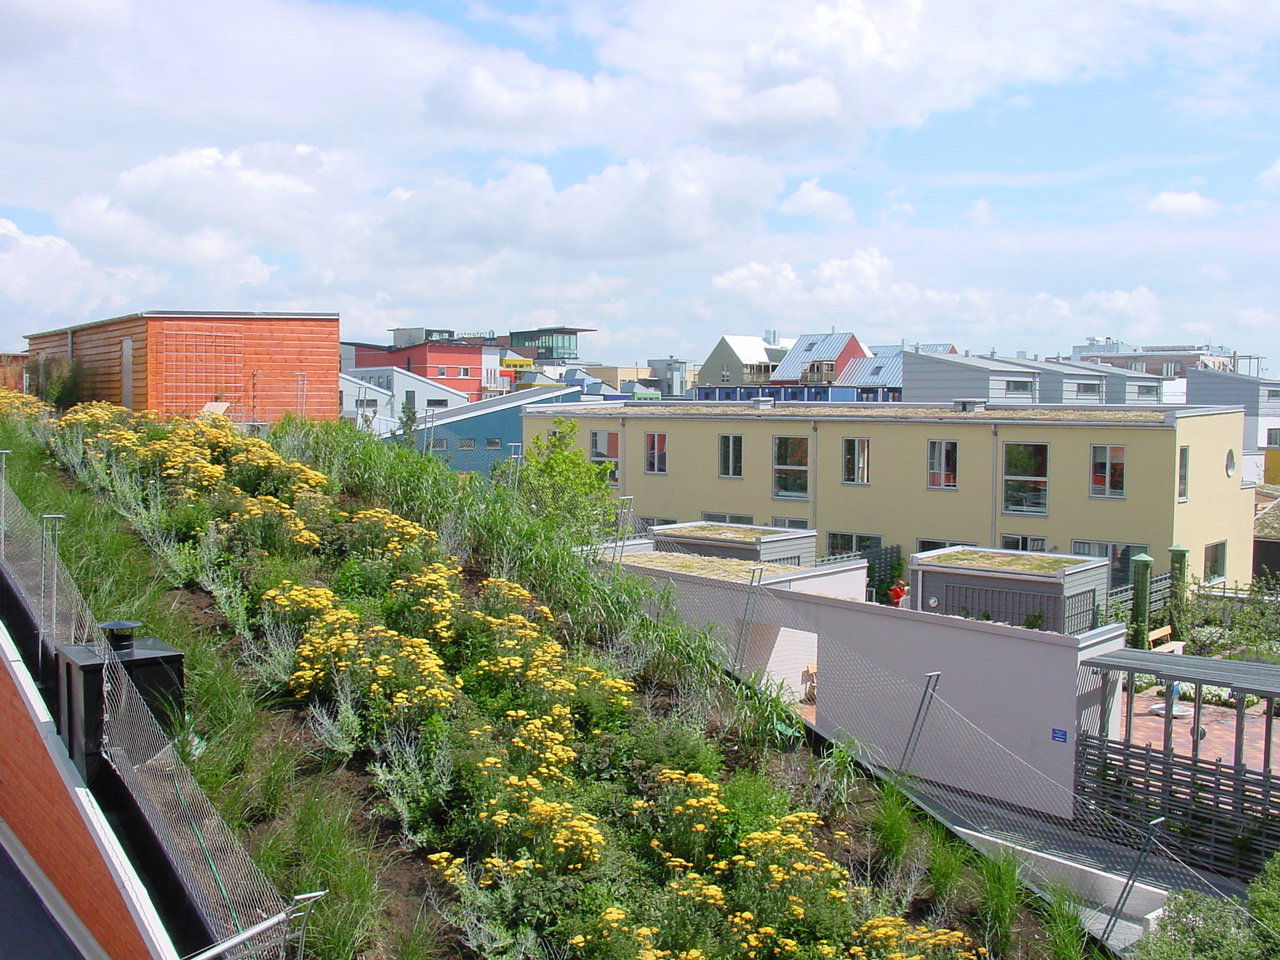 Green roof of the Bo01 District of Malmo, Sweden